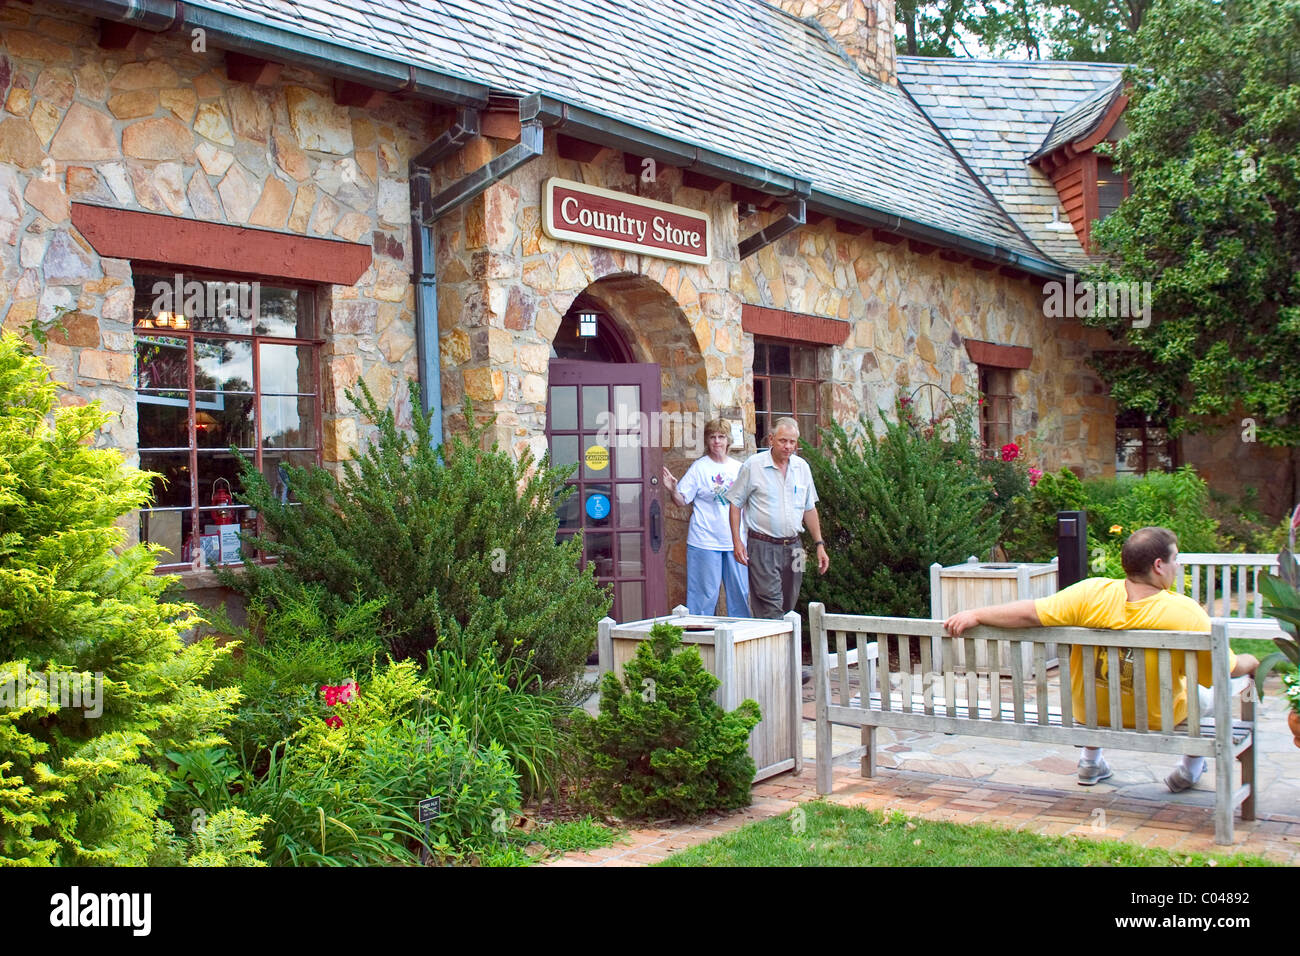 The Country Store At Callaway Gardens Offers Gifts And Food Products Stock Photo Royalty Free